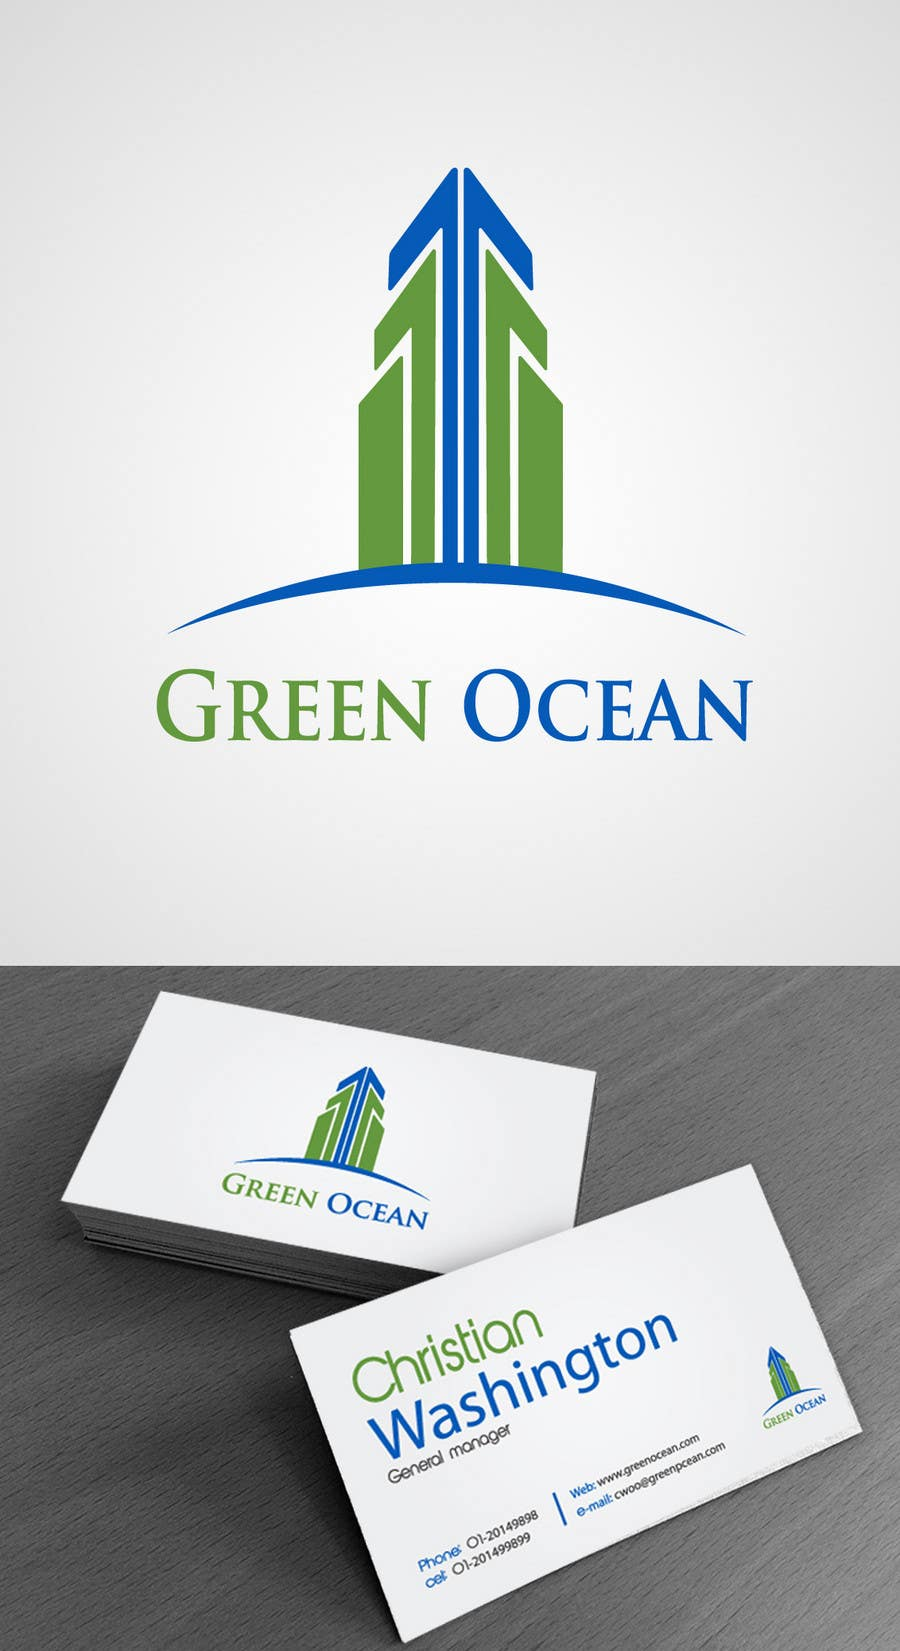 Proposition n°                                        519                                      du concours                                         Logo and Business Card Design for Green Ocean